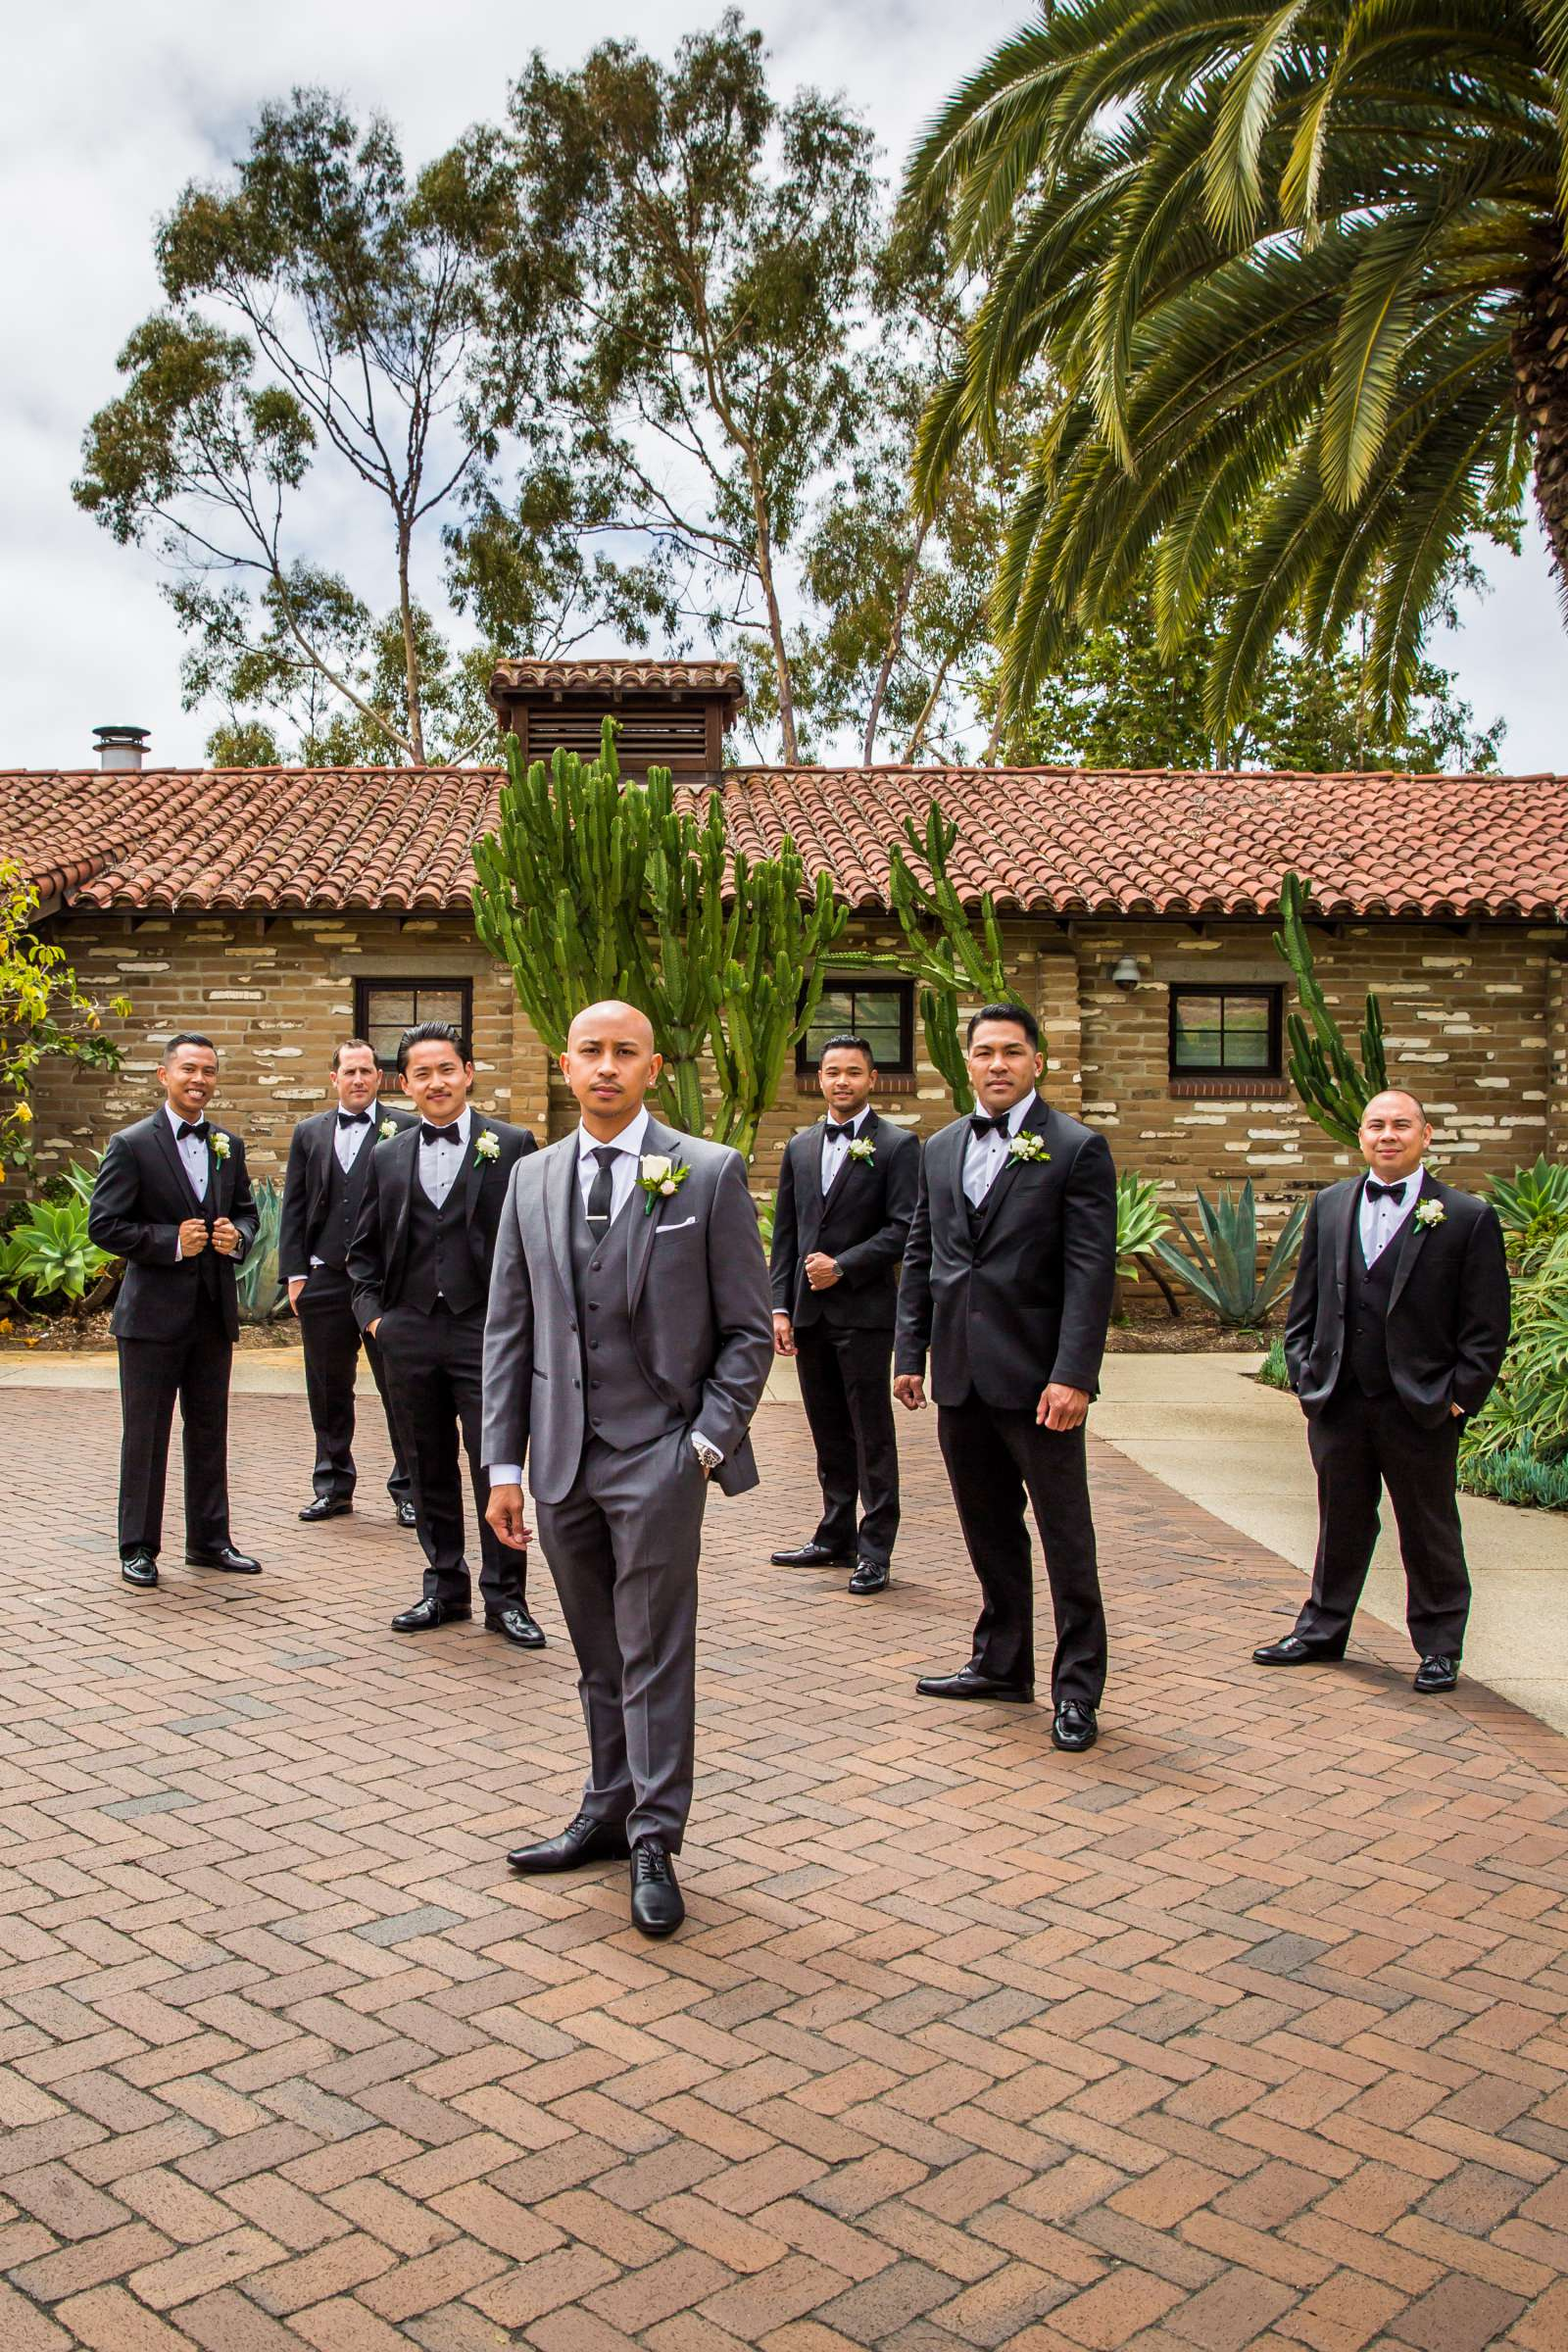 Scripps Seaside Forum Wedding coordinated by Lavish Weddings, Cindy and Justin Wedding Photo #381776 by True Photography